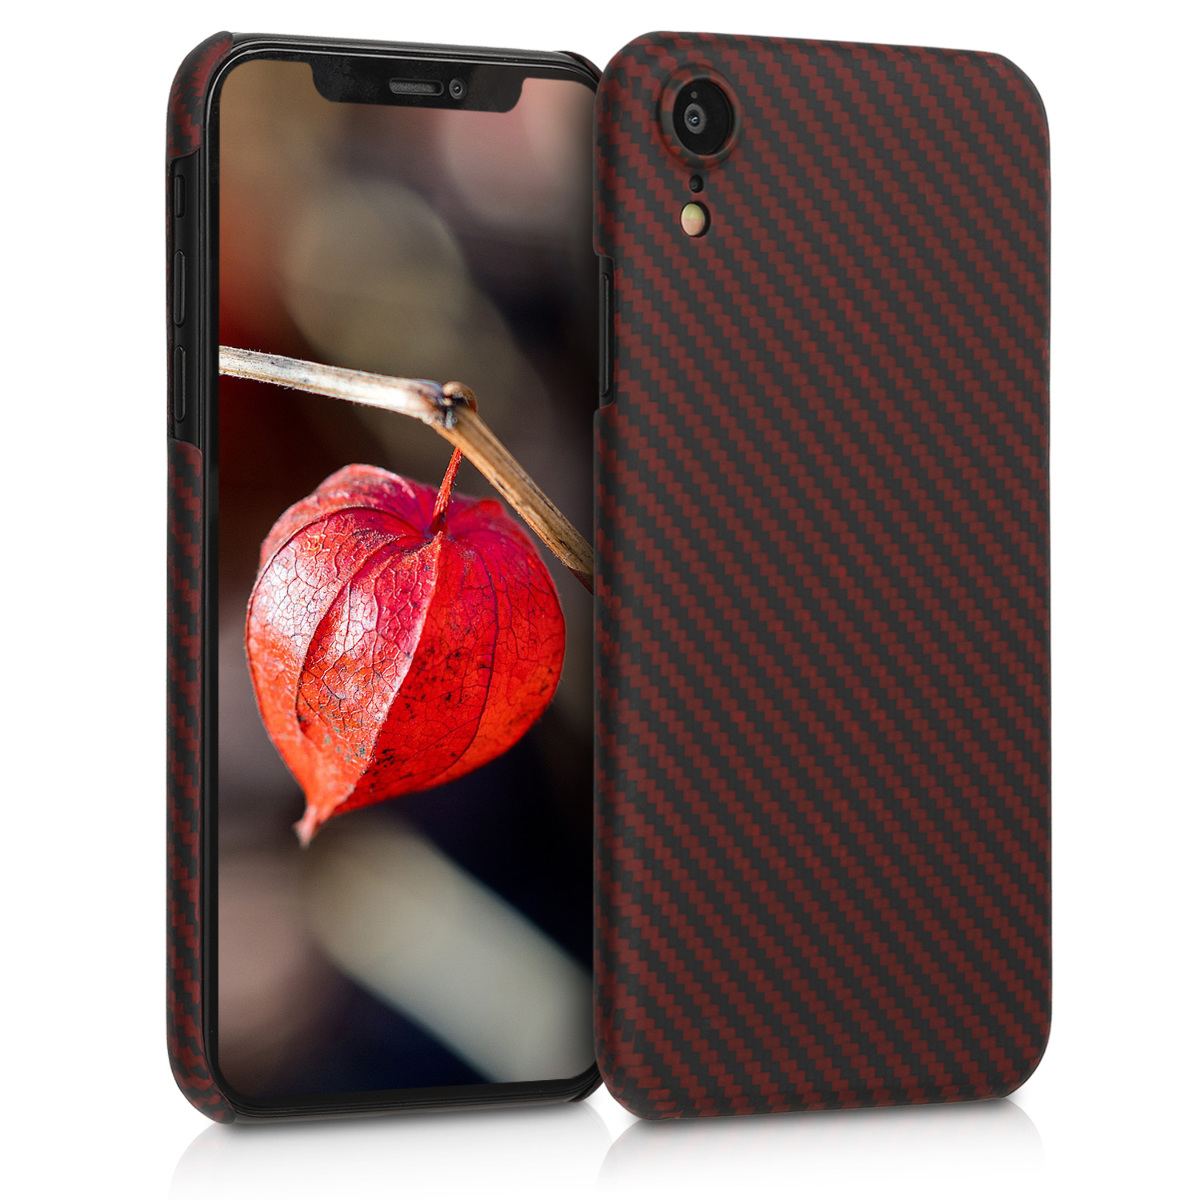 Kalibri Aramid Fiber Body - Σκληρή Θήκη iPhone XR - Red / Black Matte (45954.51)